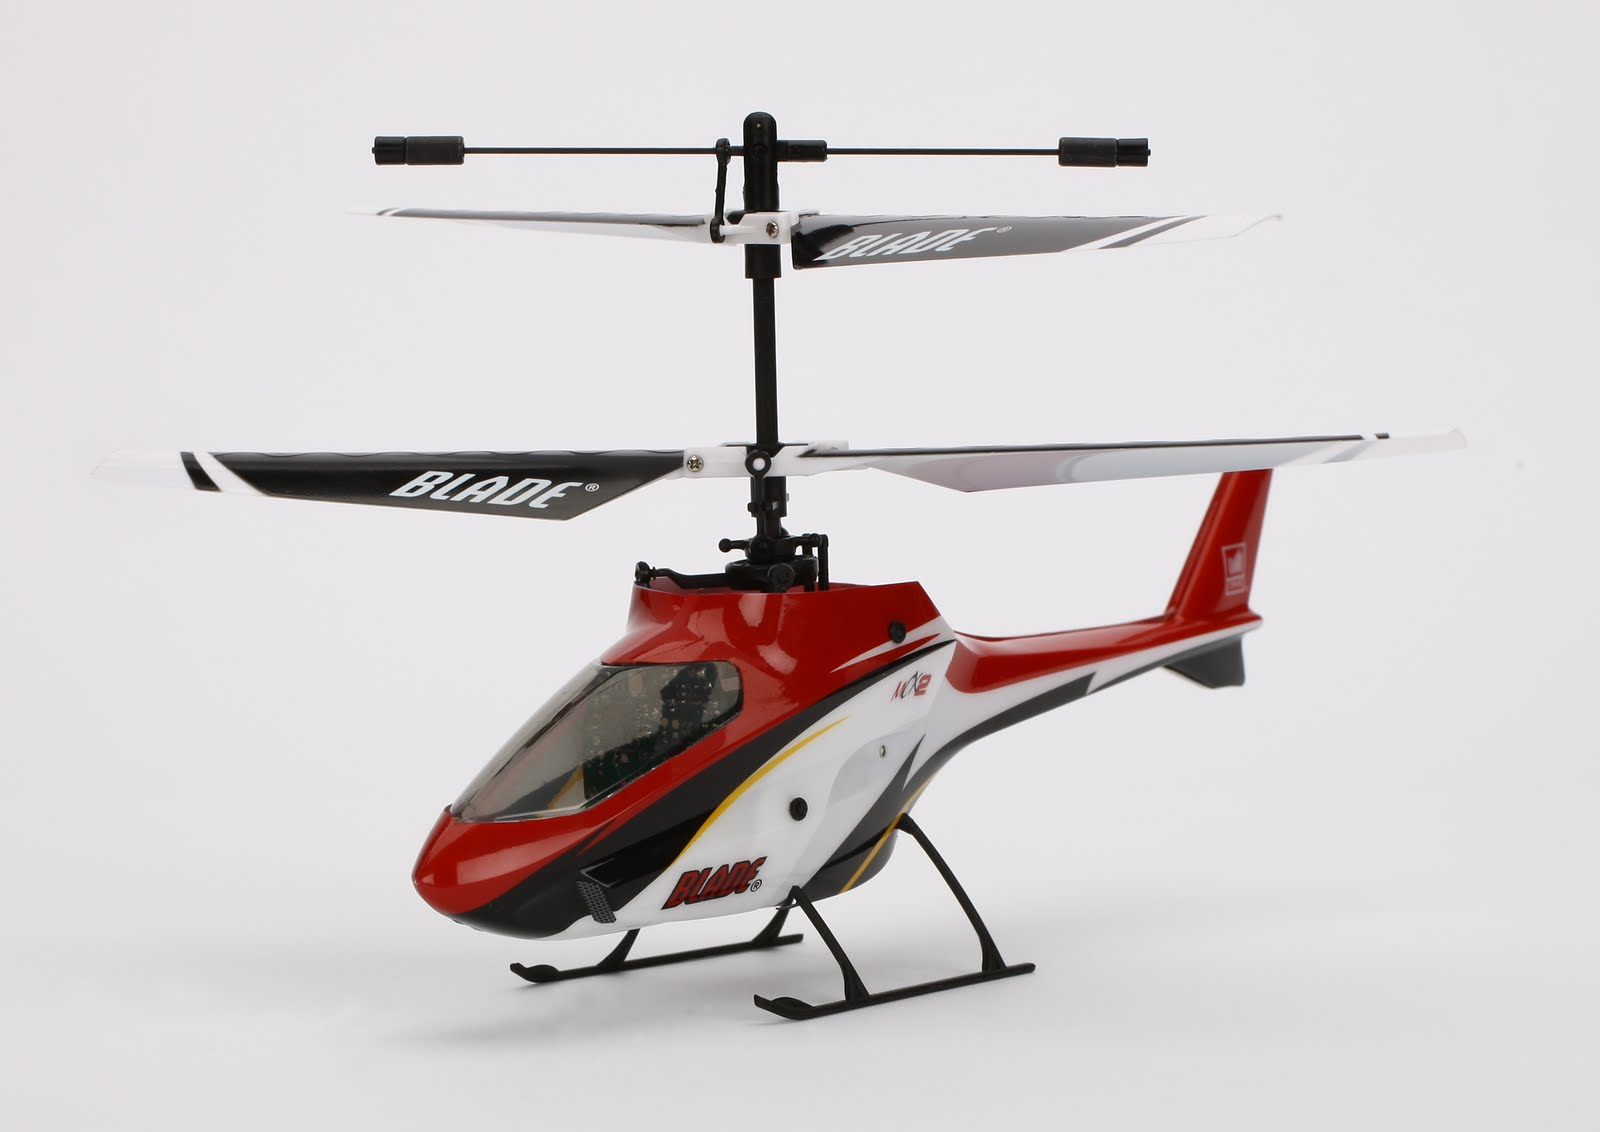 remote control helicopter for beginners with New Blade Mcx2 on Rc Airplane Beginners additionally 45 besides 12463970 besides Gallery likewise Aviao Jato Por Controle Remoto.